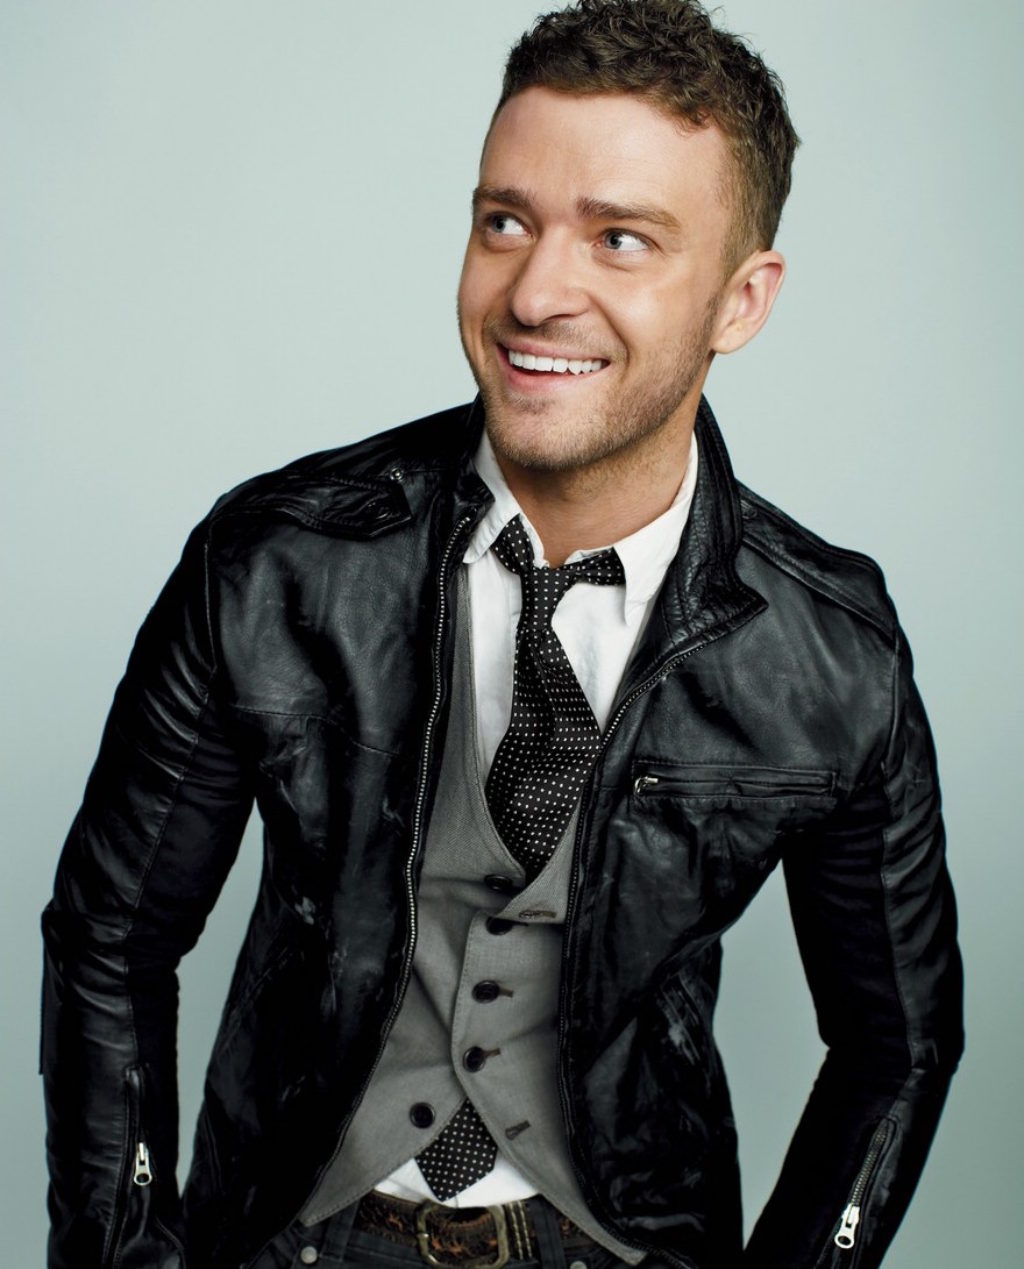 Justin Timberlake Wearing William Rast Black Leather Jacket, Vest and Tie